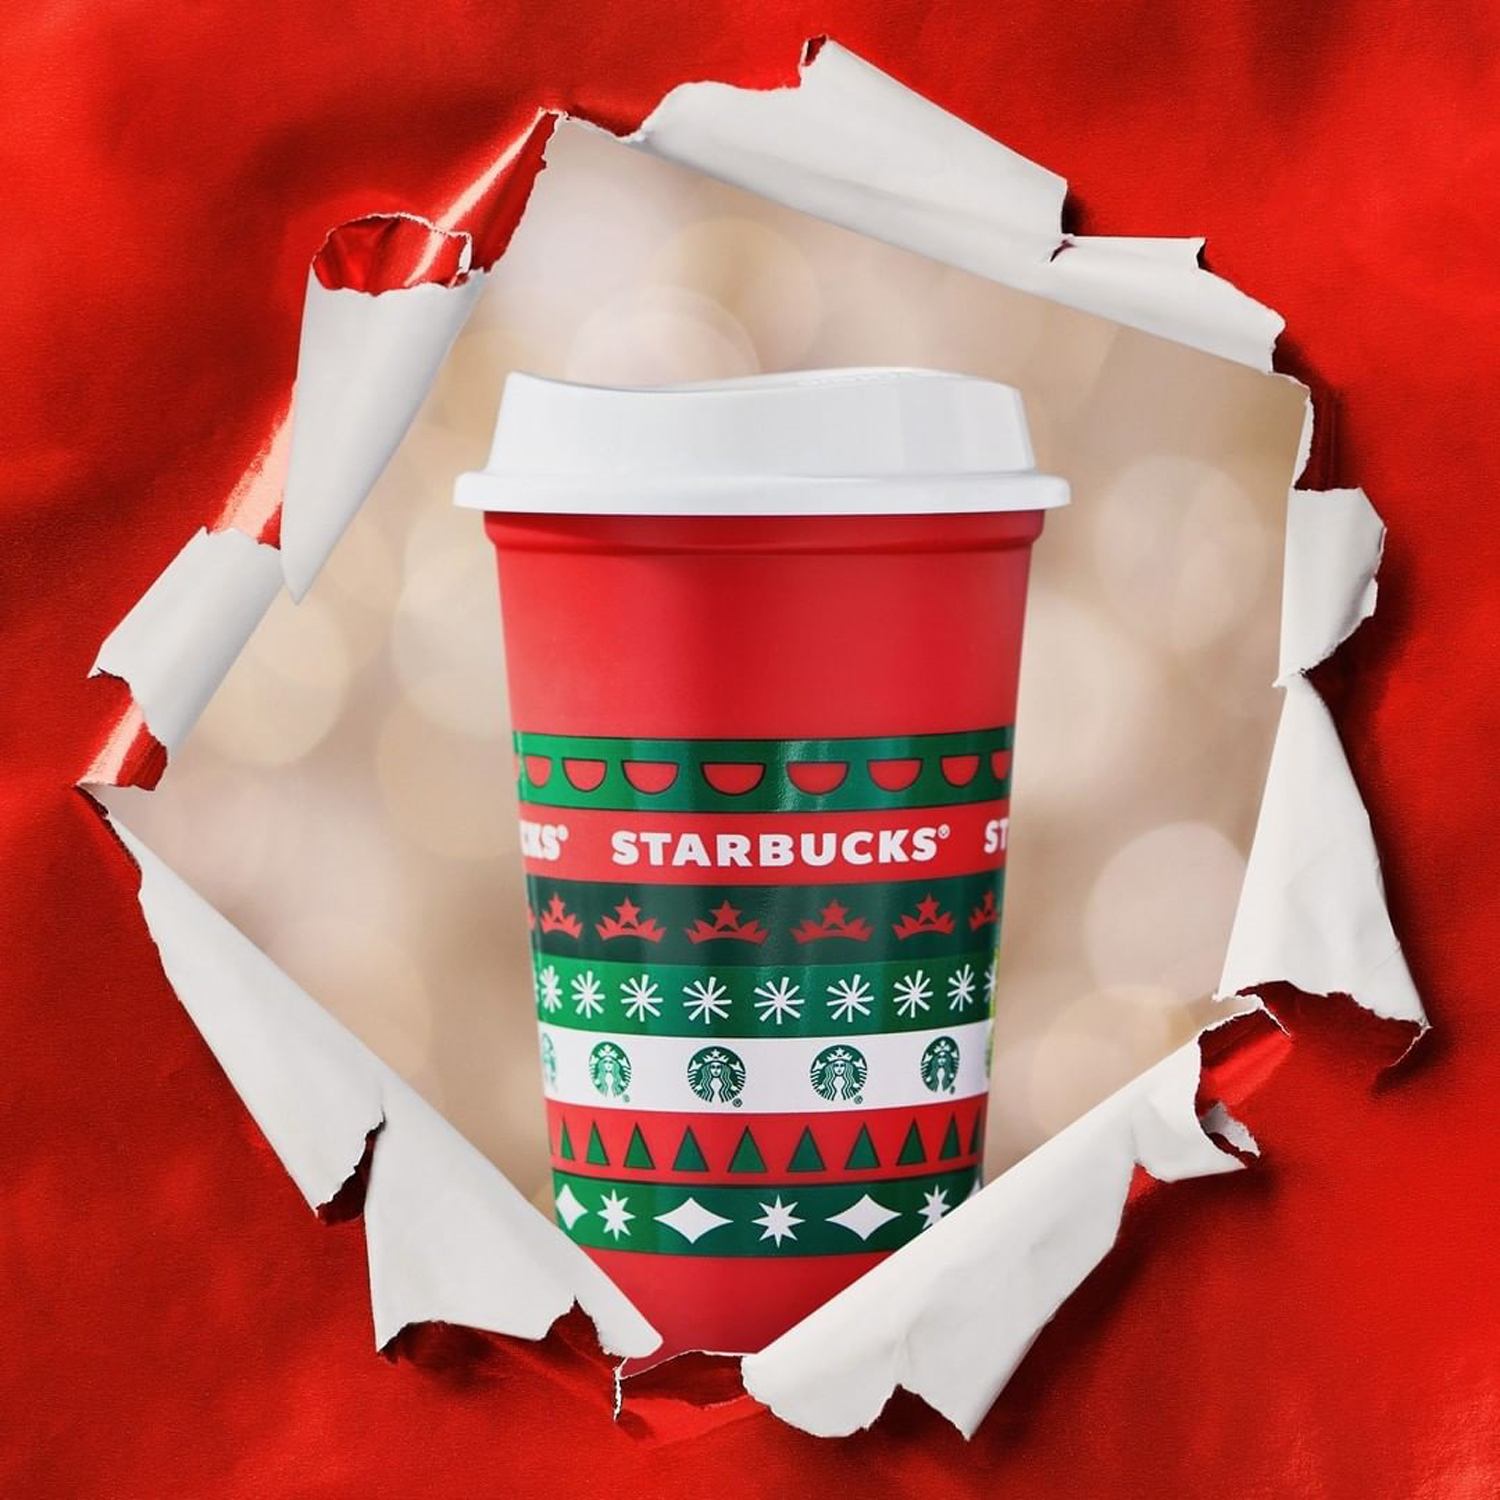 Limited-edition Starbucks Red Cups